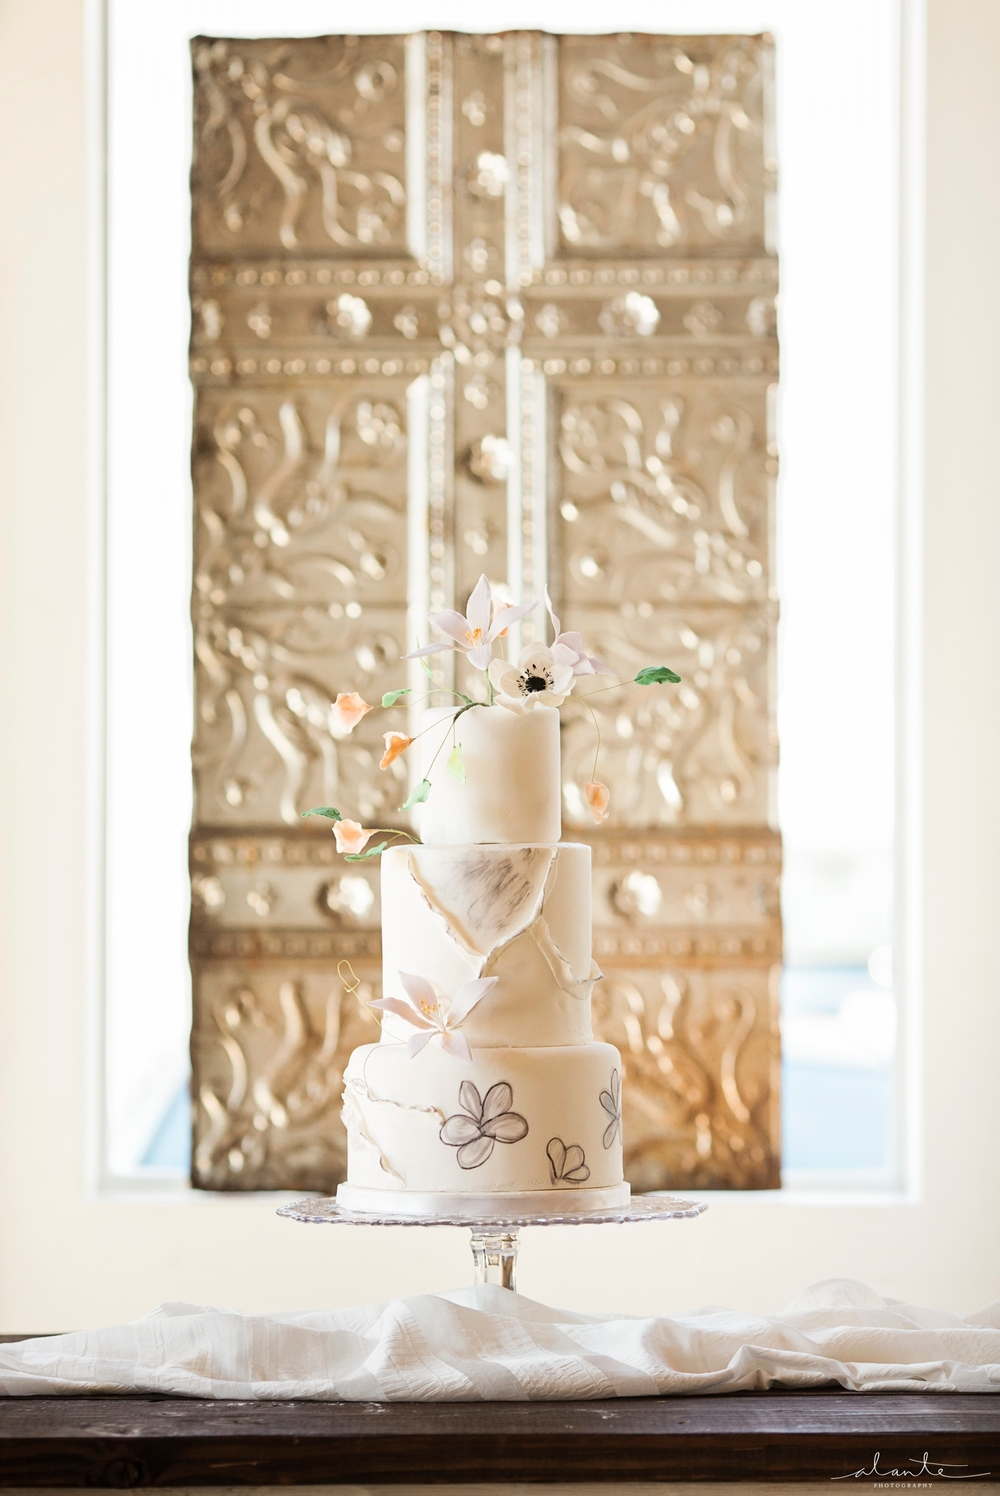 www.alantephotography.com | Stained glass wedding cake by Lilac Cake Boutique | Alante Photography